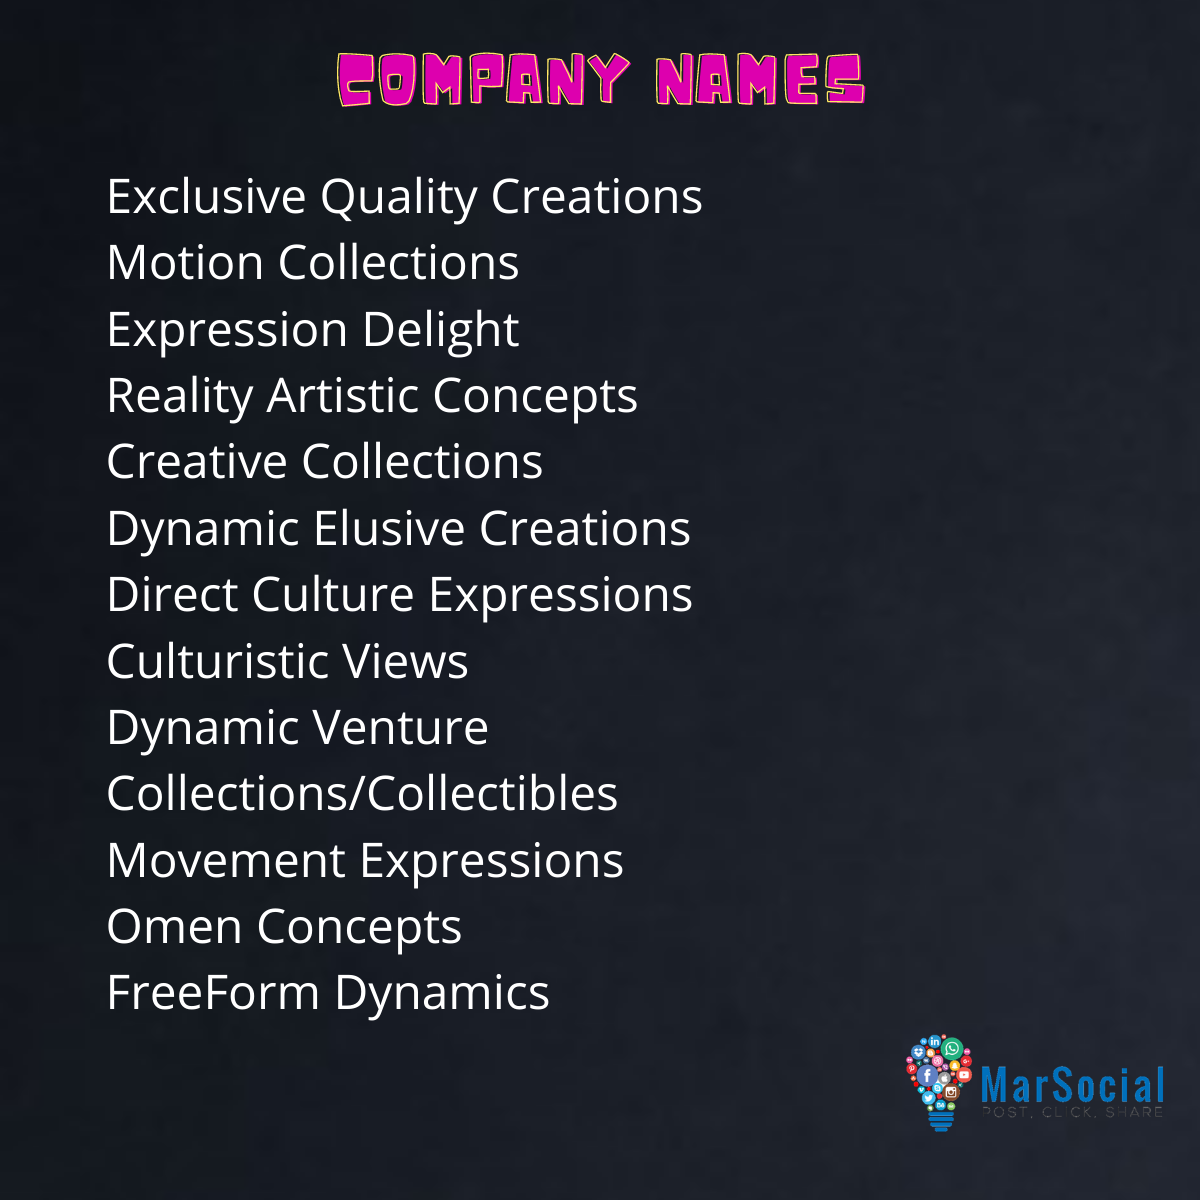 Business Branding - Company Names, Taglines/Slogans, Mission and Vision Statements